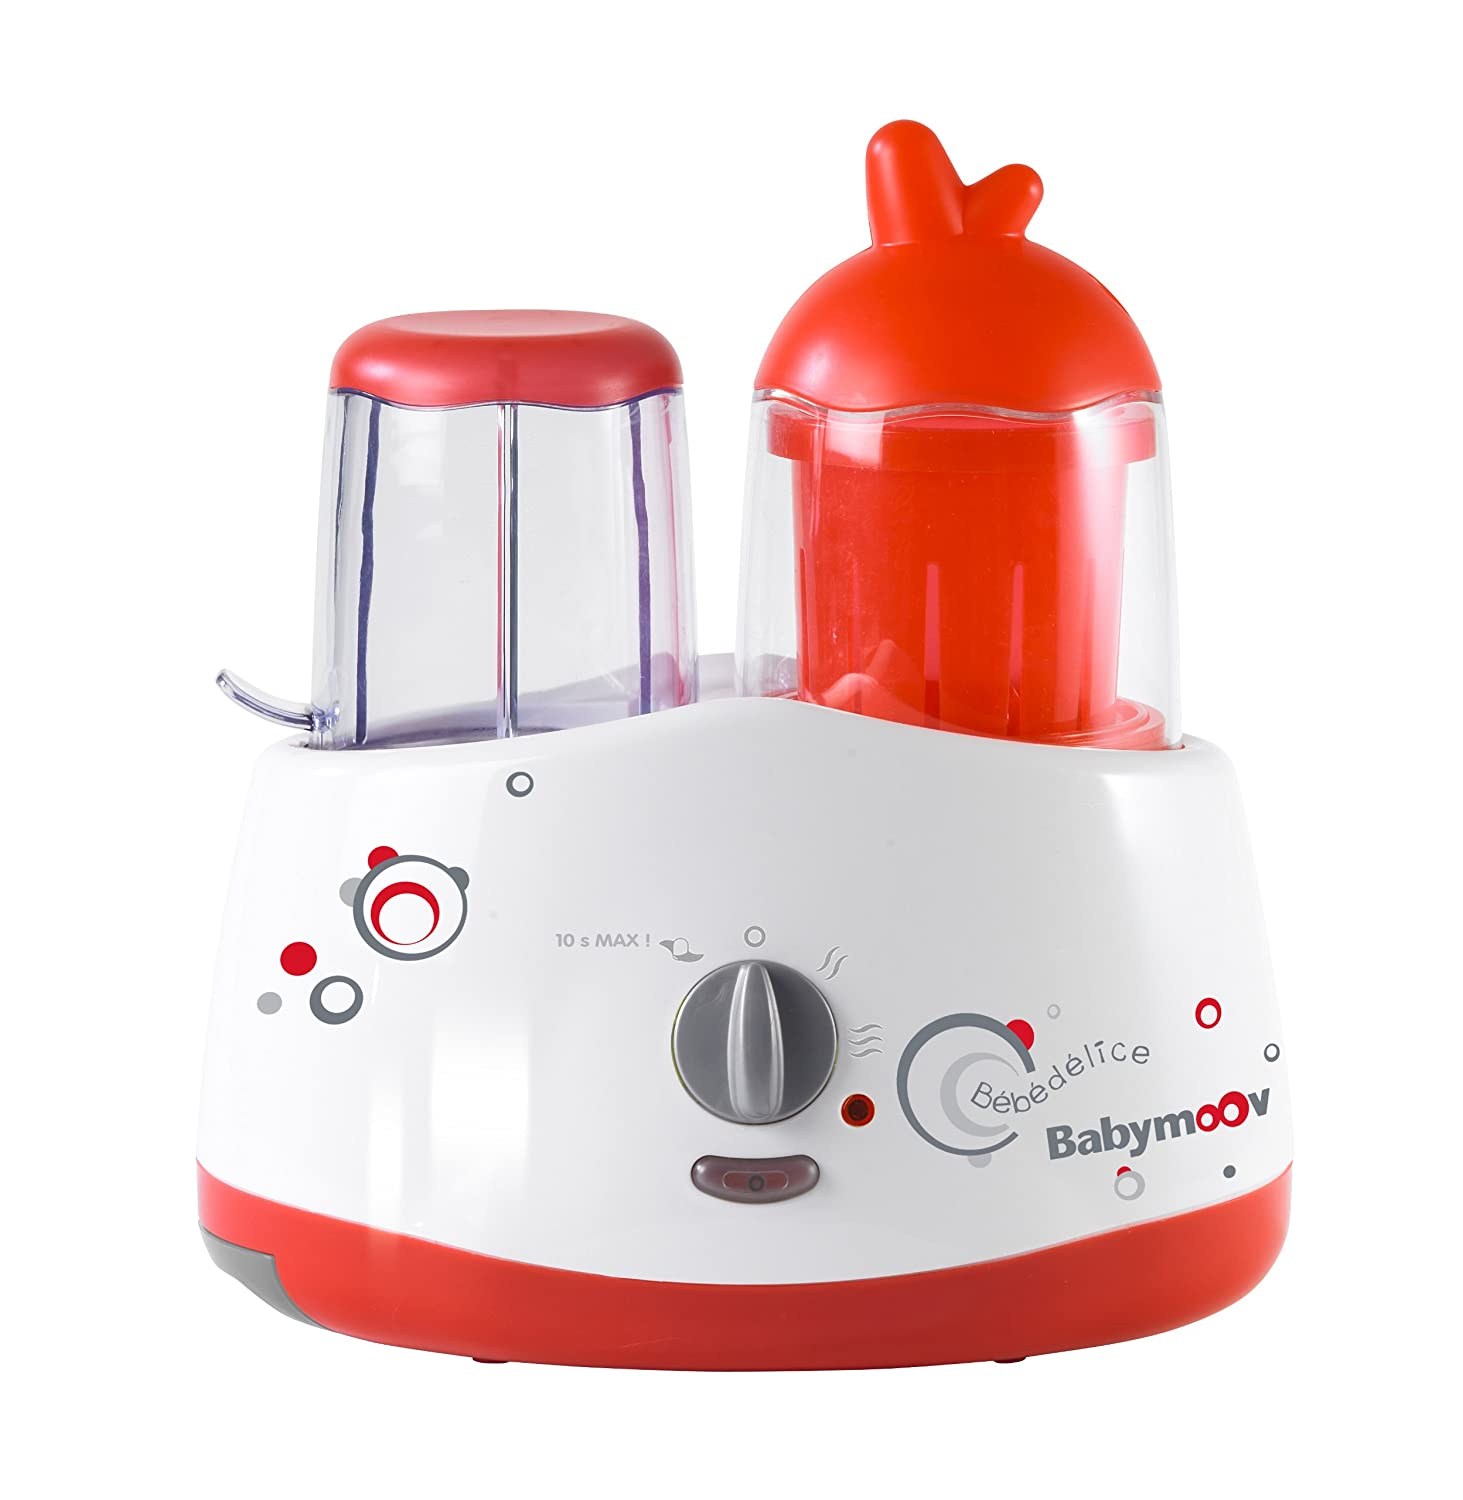 Babymoov Bebedelice 5 in 1 Baby Food Processor, Red/Grey A001014